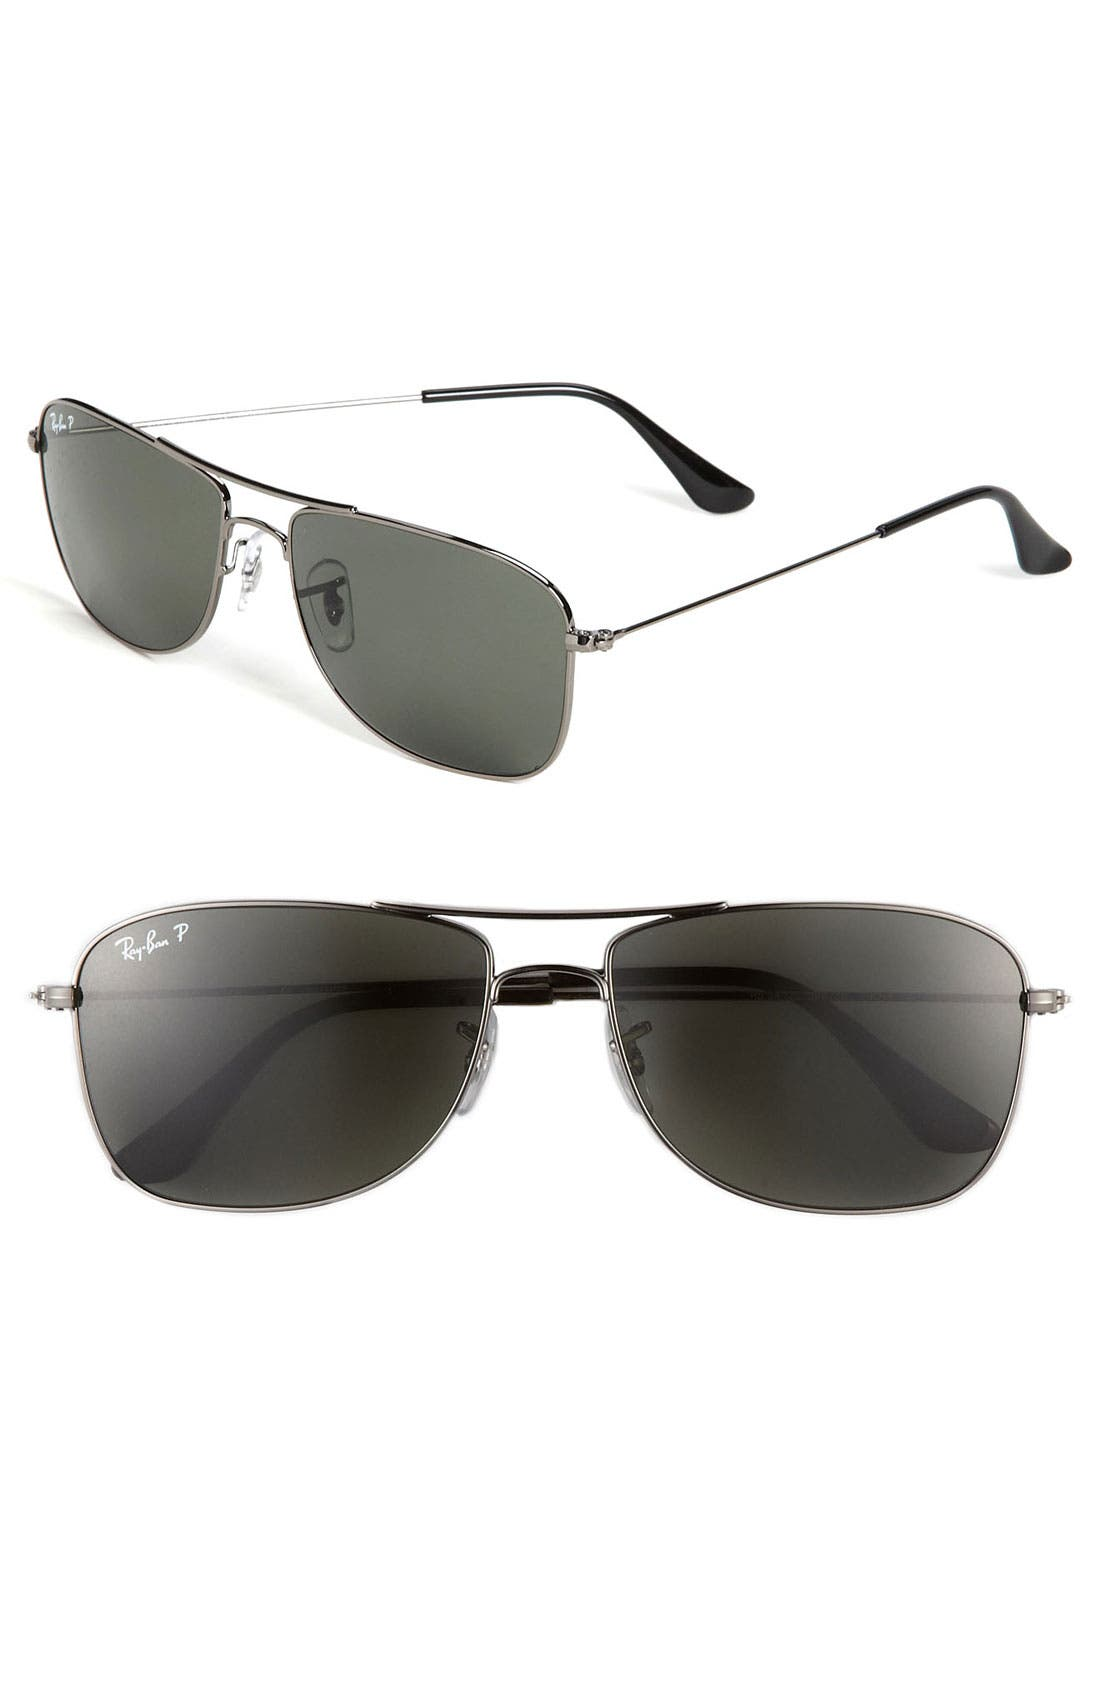 Alternate Image 1 Selected - Ray-Ban 'M Mod Caravan' 59mm Polarized Aviator Sunglasses